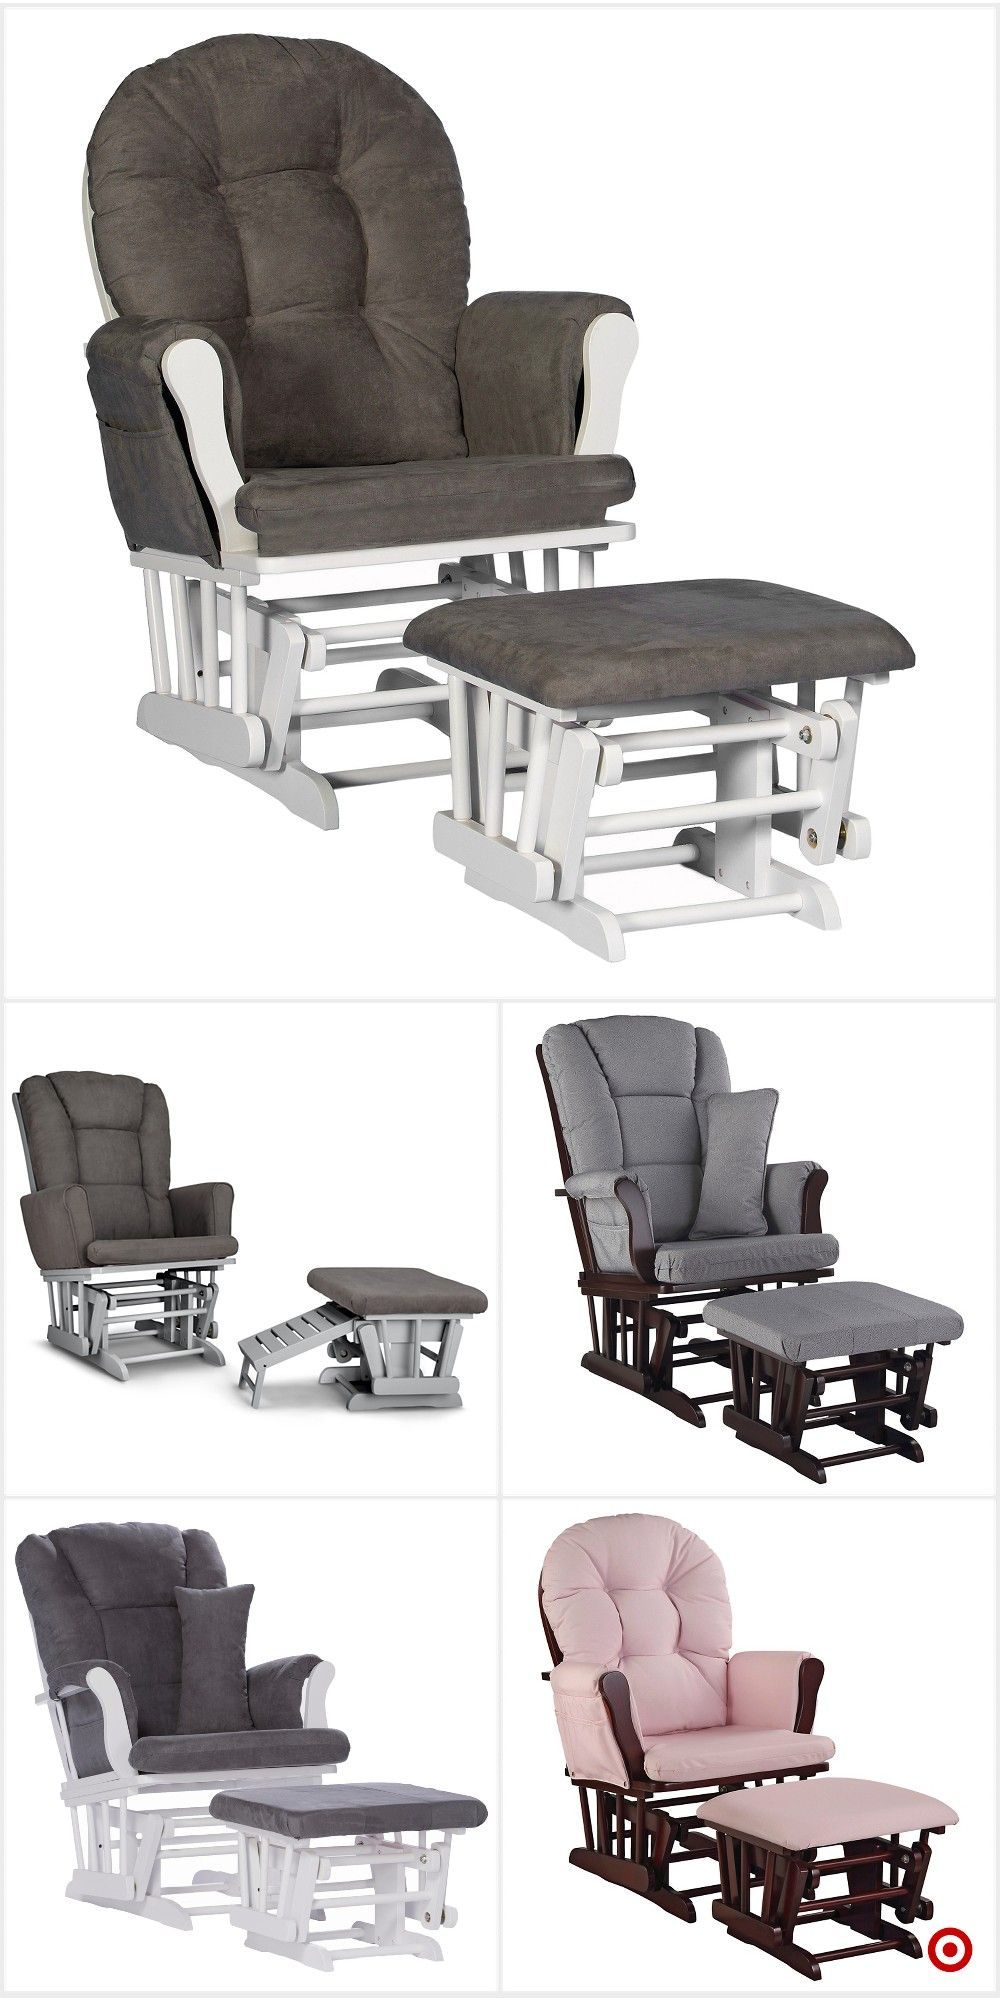 Pleasing Shop Target For Arm Chairs Chair And Ottoman Sets You Will Spiritservingveterans Wood Chair Design Ideas Spiritservingveteransorg